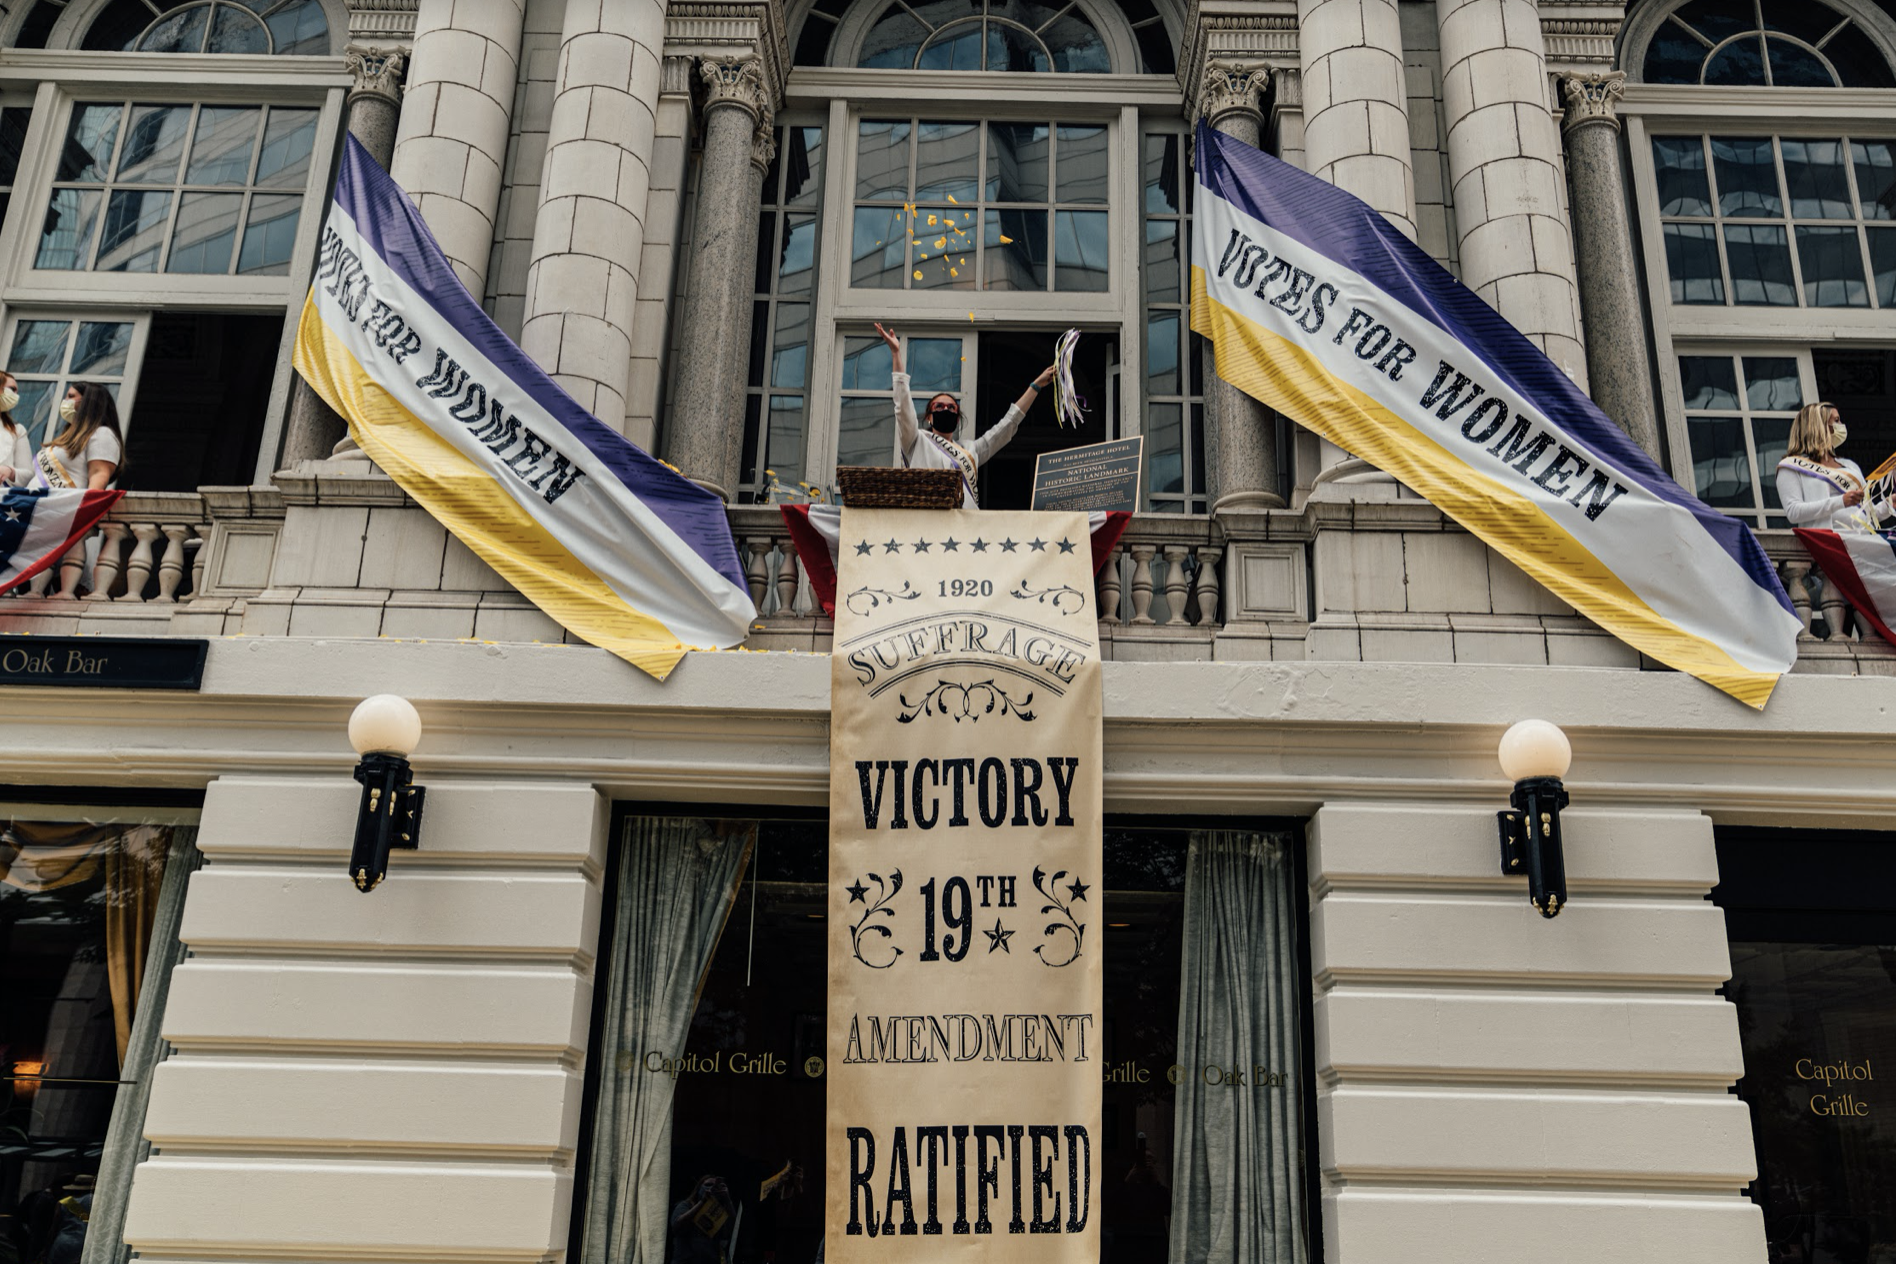 Nashville, Tenn., Aug. 18 - The Hermitage Hotel displays pride in its role in passing the 19th Amendment. (Photo: Alex Kent)